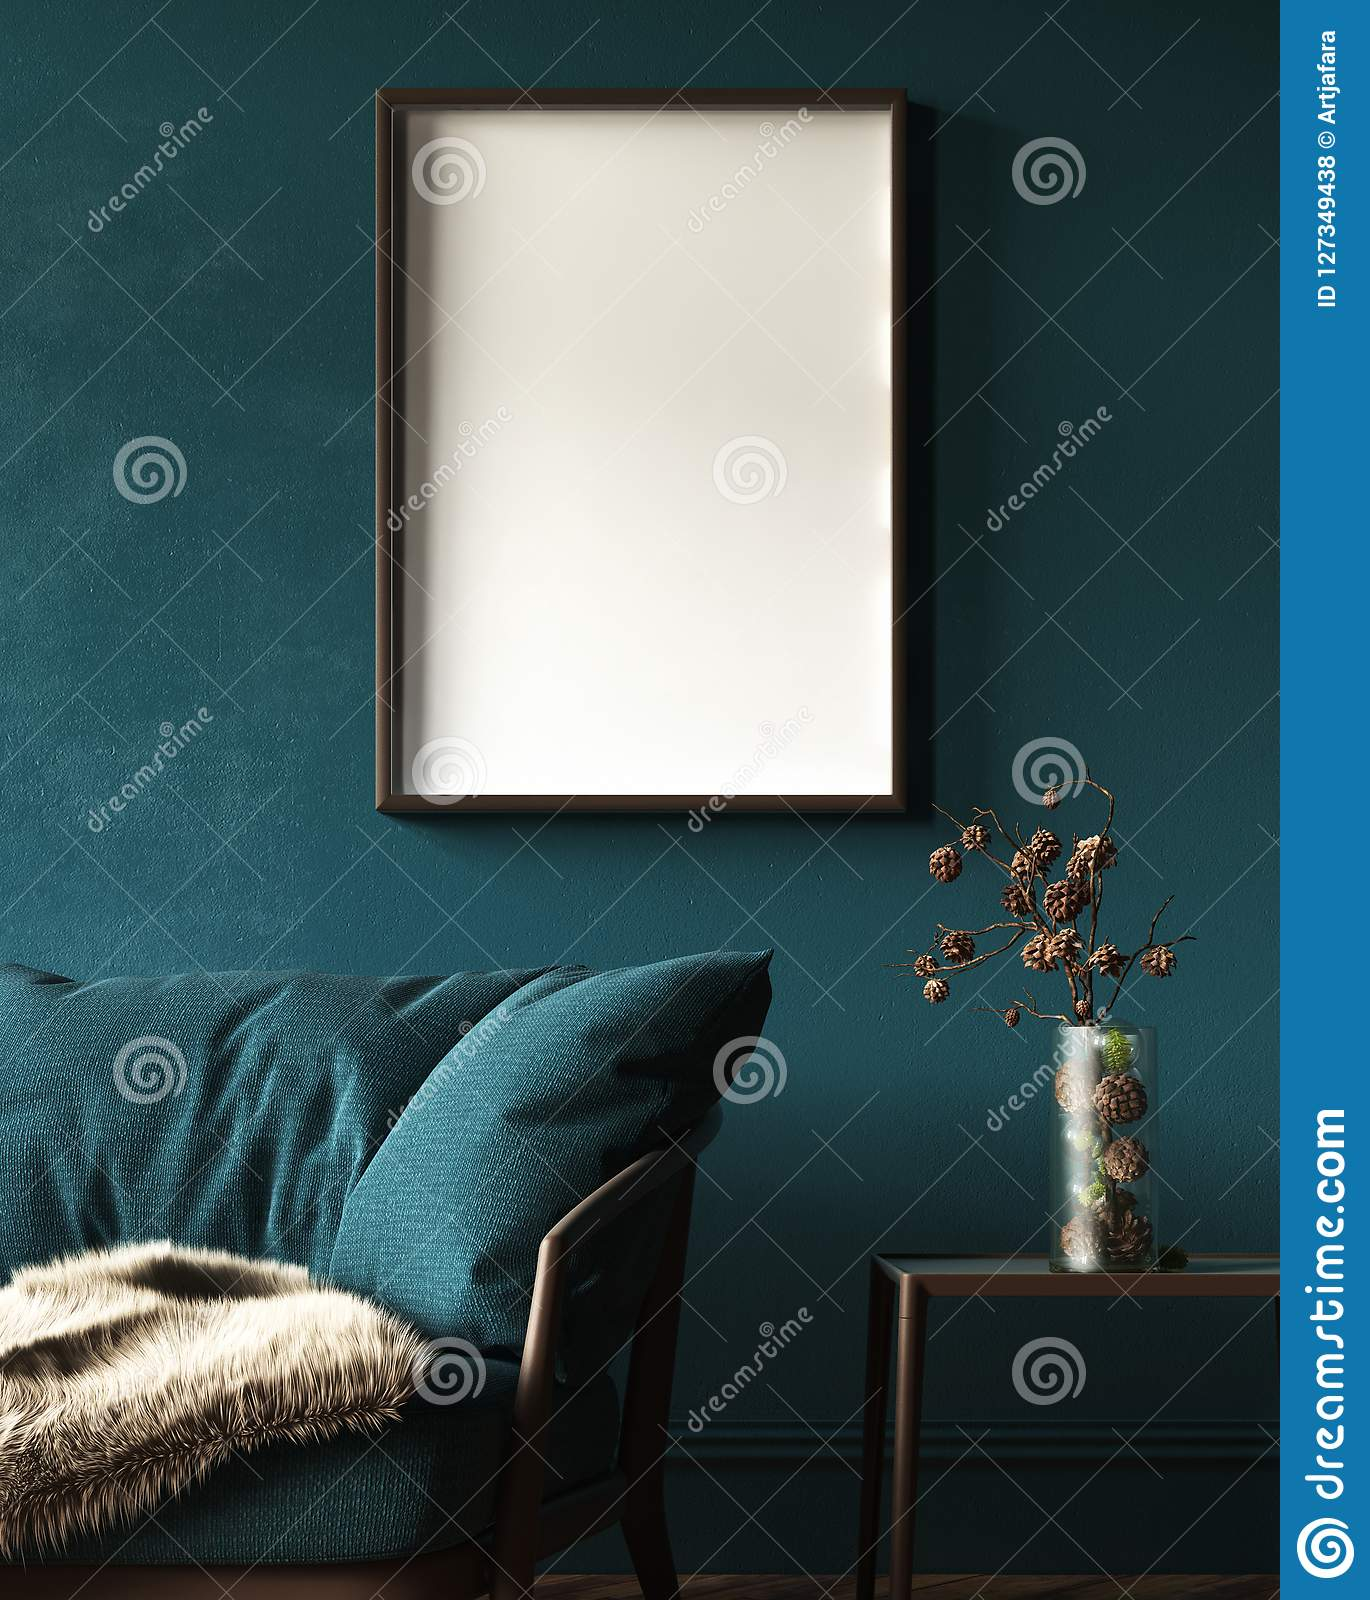 Mock-up frame in dark green home interior with sofa, fur, table and branch in vase